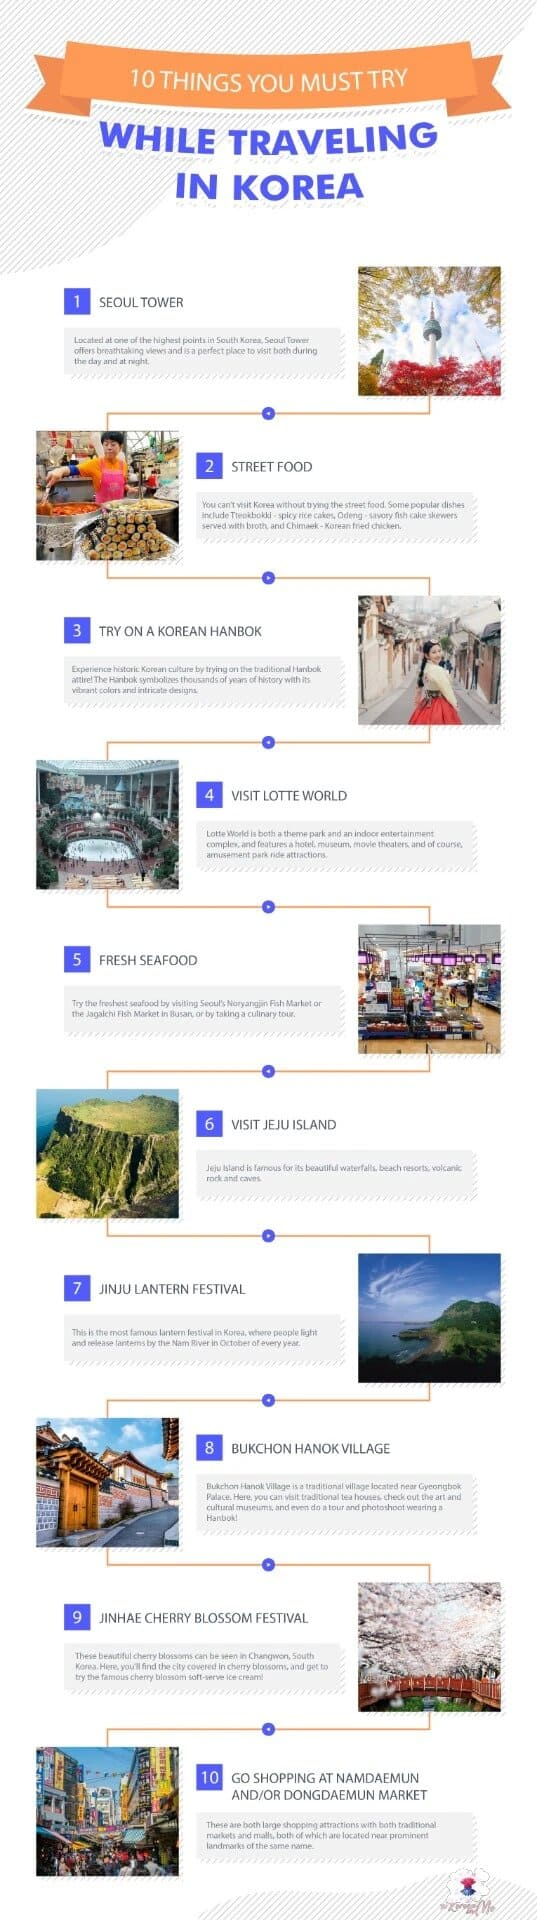 10 Things You Must Try While Traveling in Korea